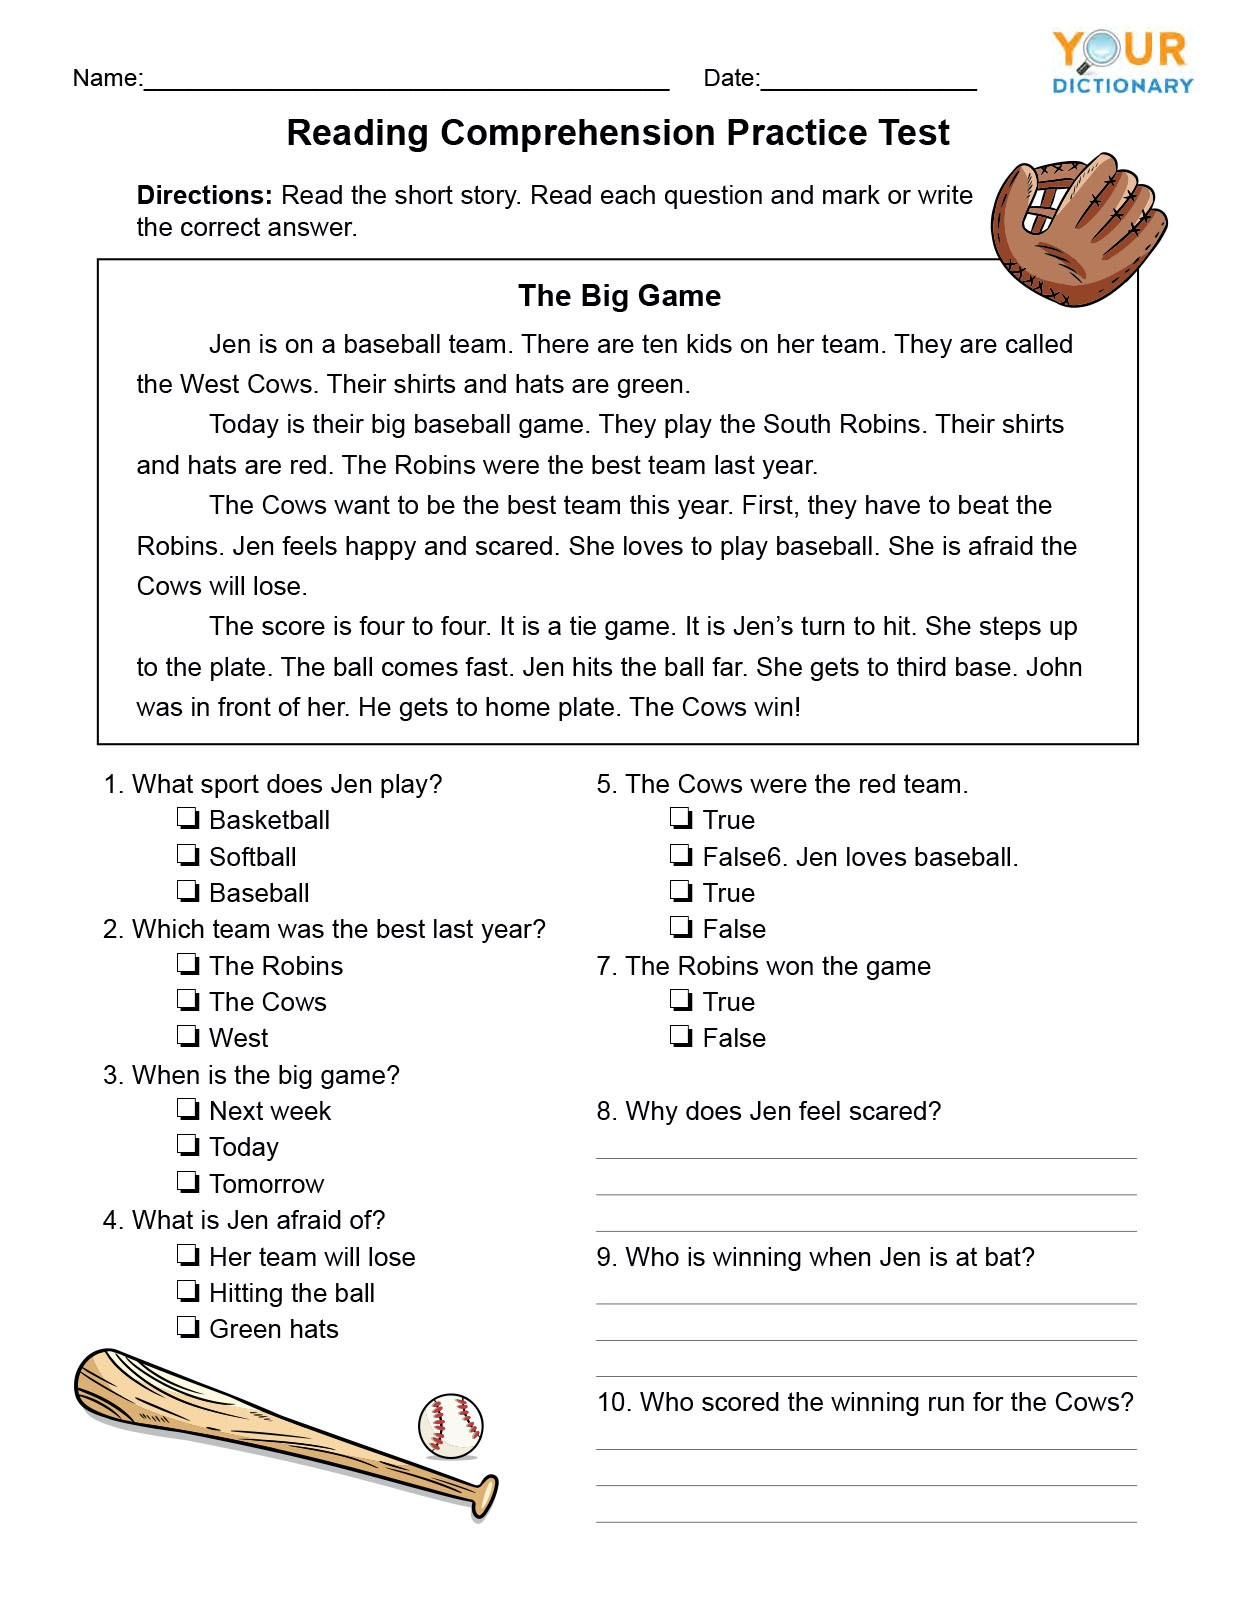 The Farmer In The Hat Comprehension Test